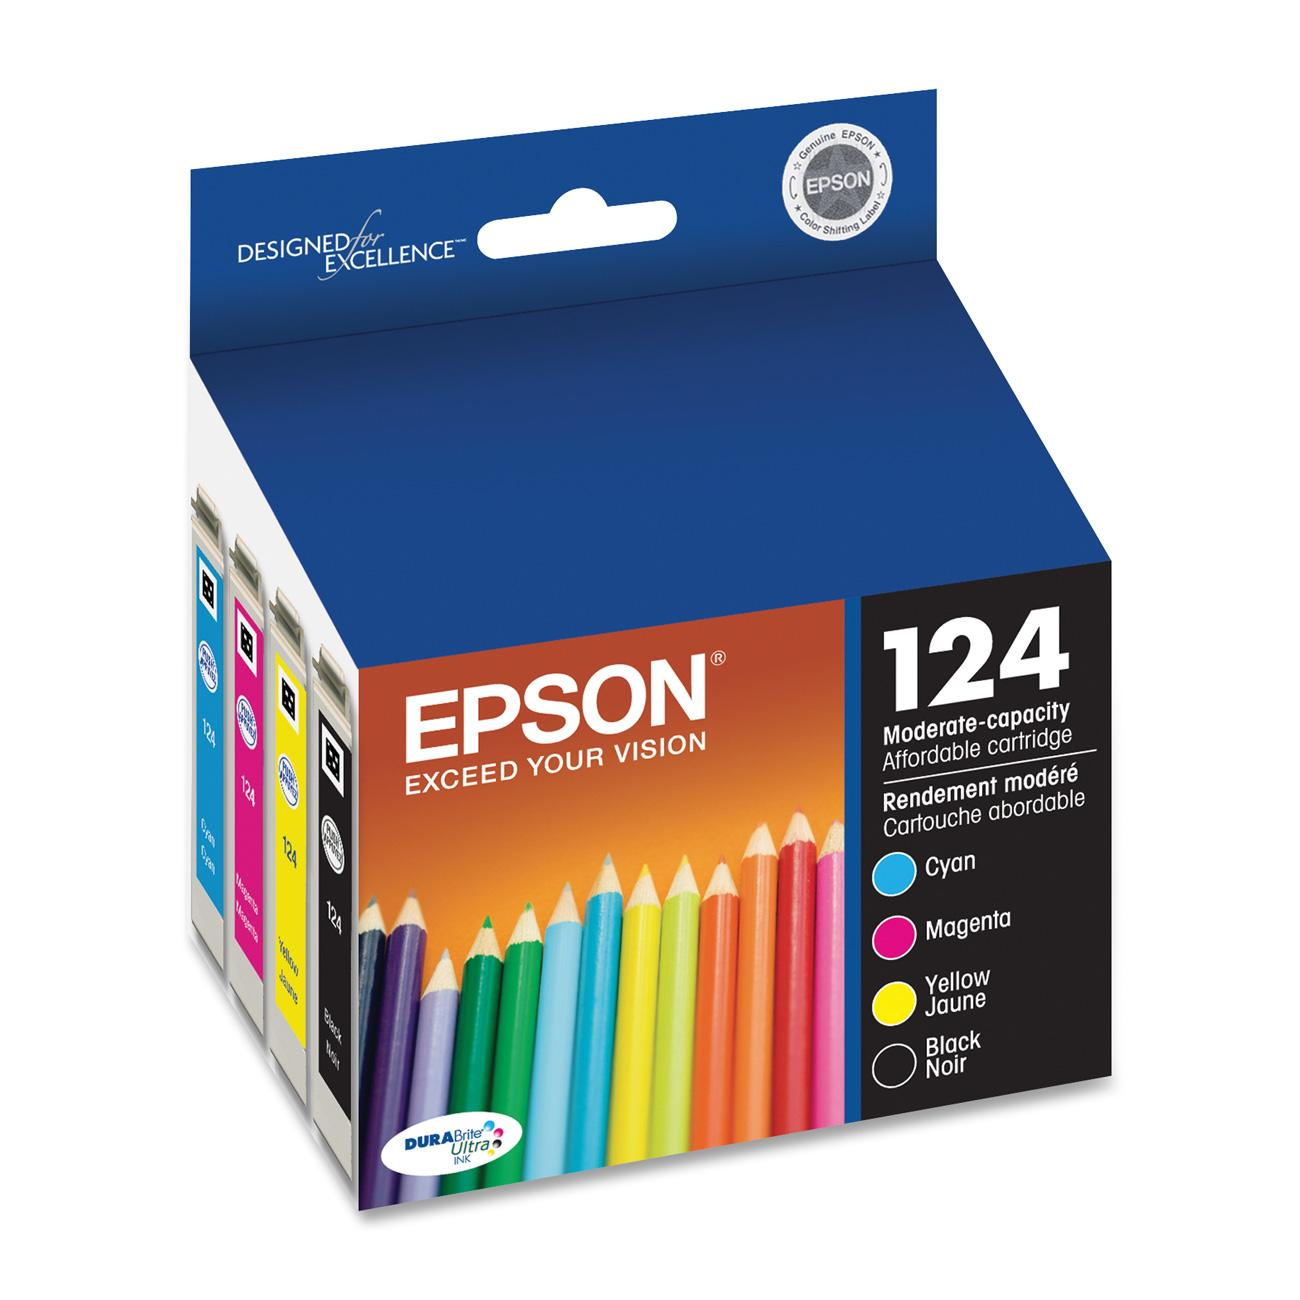 Epson 124 DURABrite Original Black Color Combo Pack Ink Cartridge by Epson